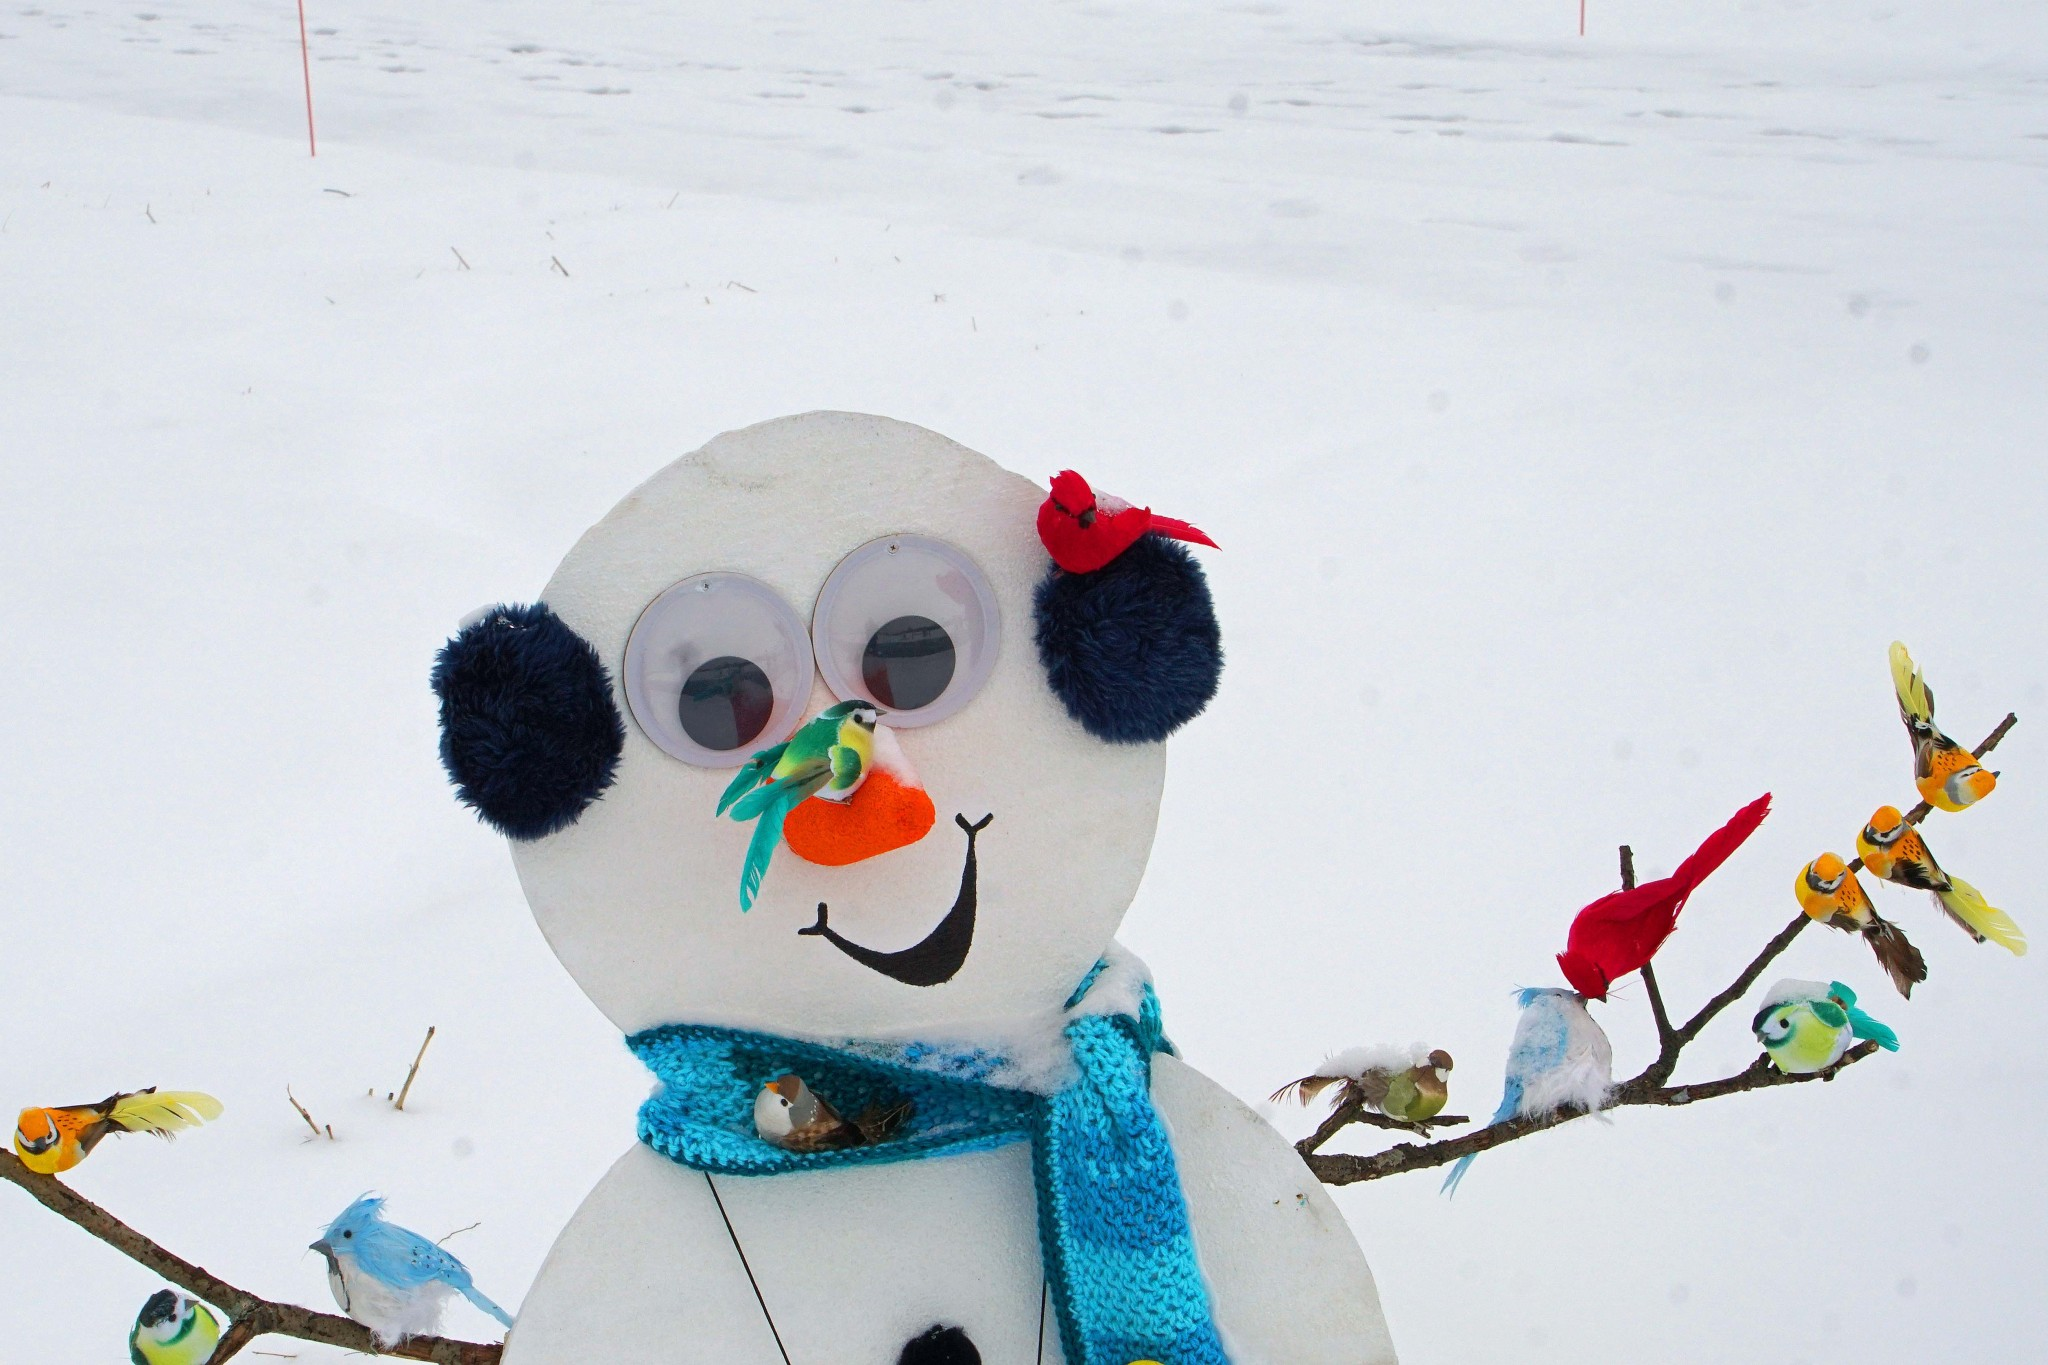 """There's """"Snow Place Like Metroparks"""" for a fun winter escape. Visitors to the New Glass City Metropark in East Toledo will find a display of more than 100 decorated Snow People displayed along the road for a drive-through experience. (Photo courtesy of Metroparks Toledo)"""